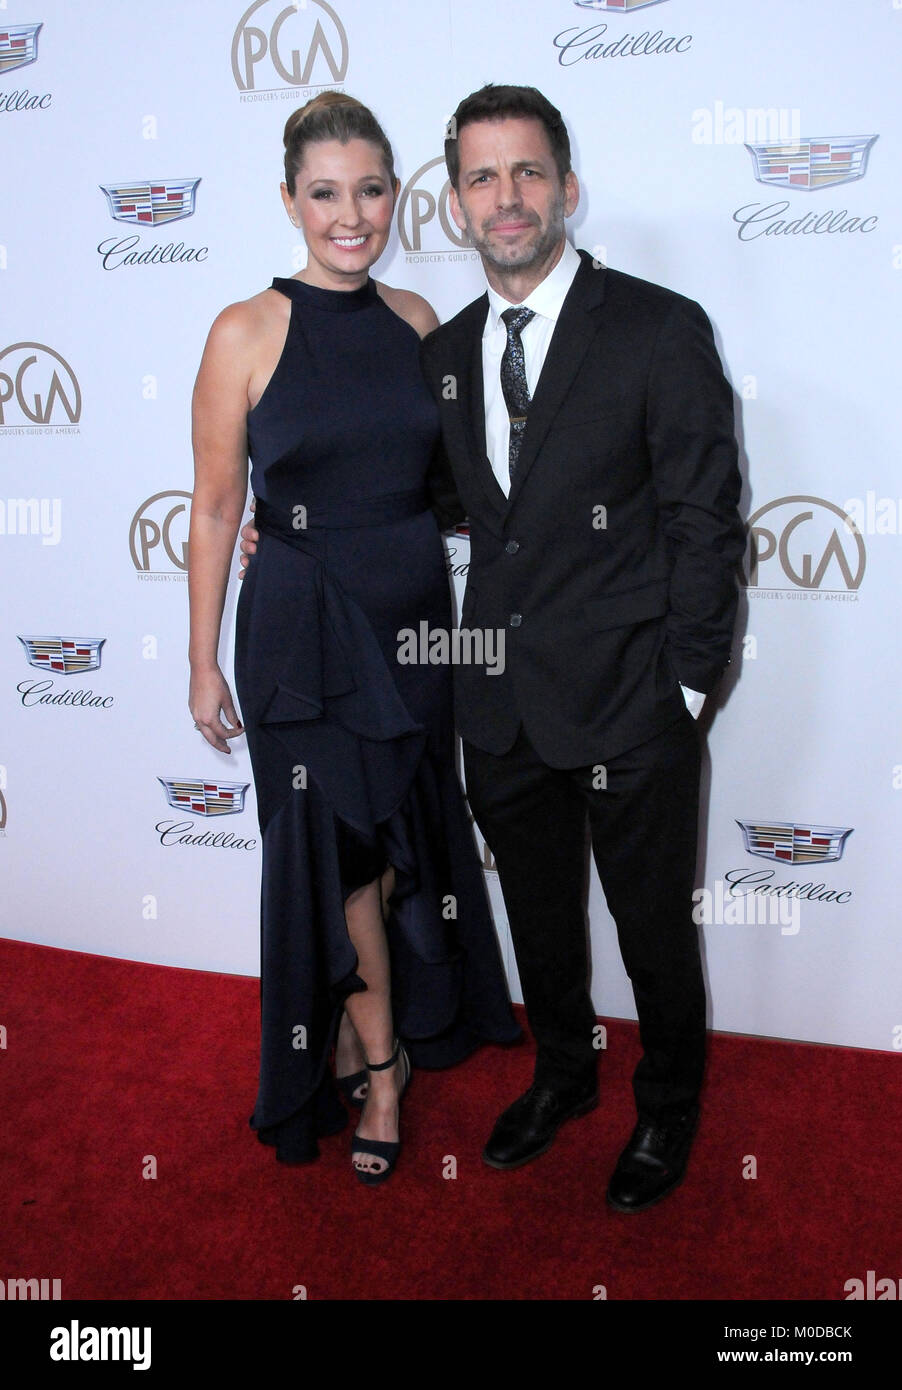 BEVERLY HILLS, CA - JANUARY 20: Director Zack Snyder (R) and wife Deborah Snyder (L) attend the 2018 Annual Producers - Stock Image